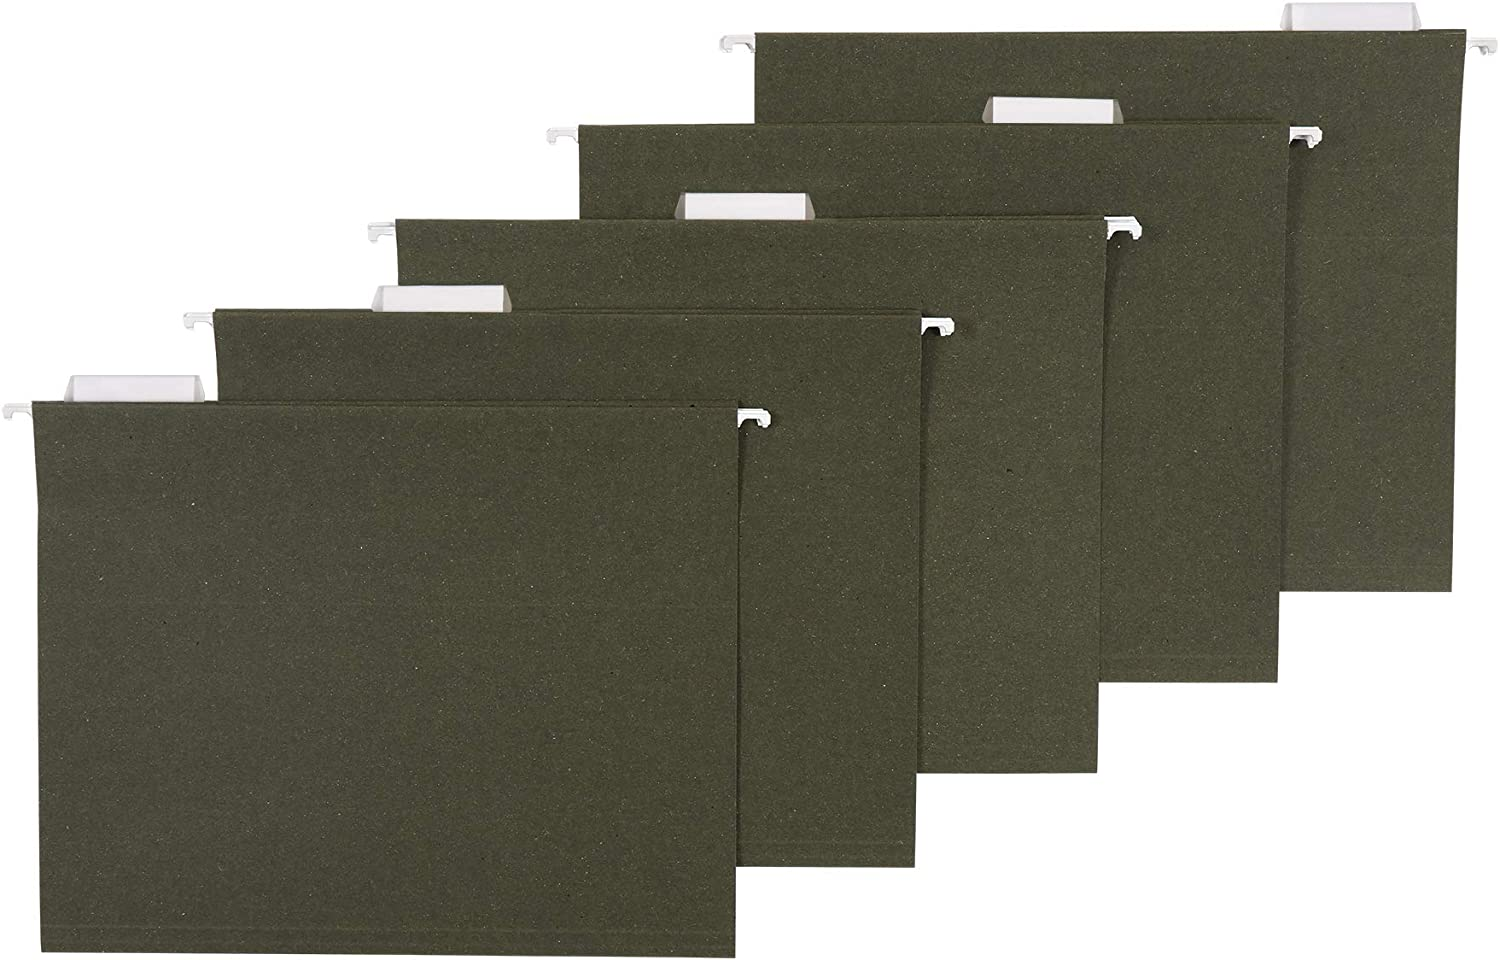 AmazonBasics Hanging File Folders, Letter Size, Standard Green,1/5-Cut Tabs, 50 per box